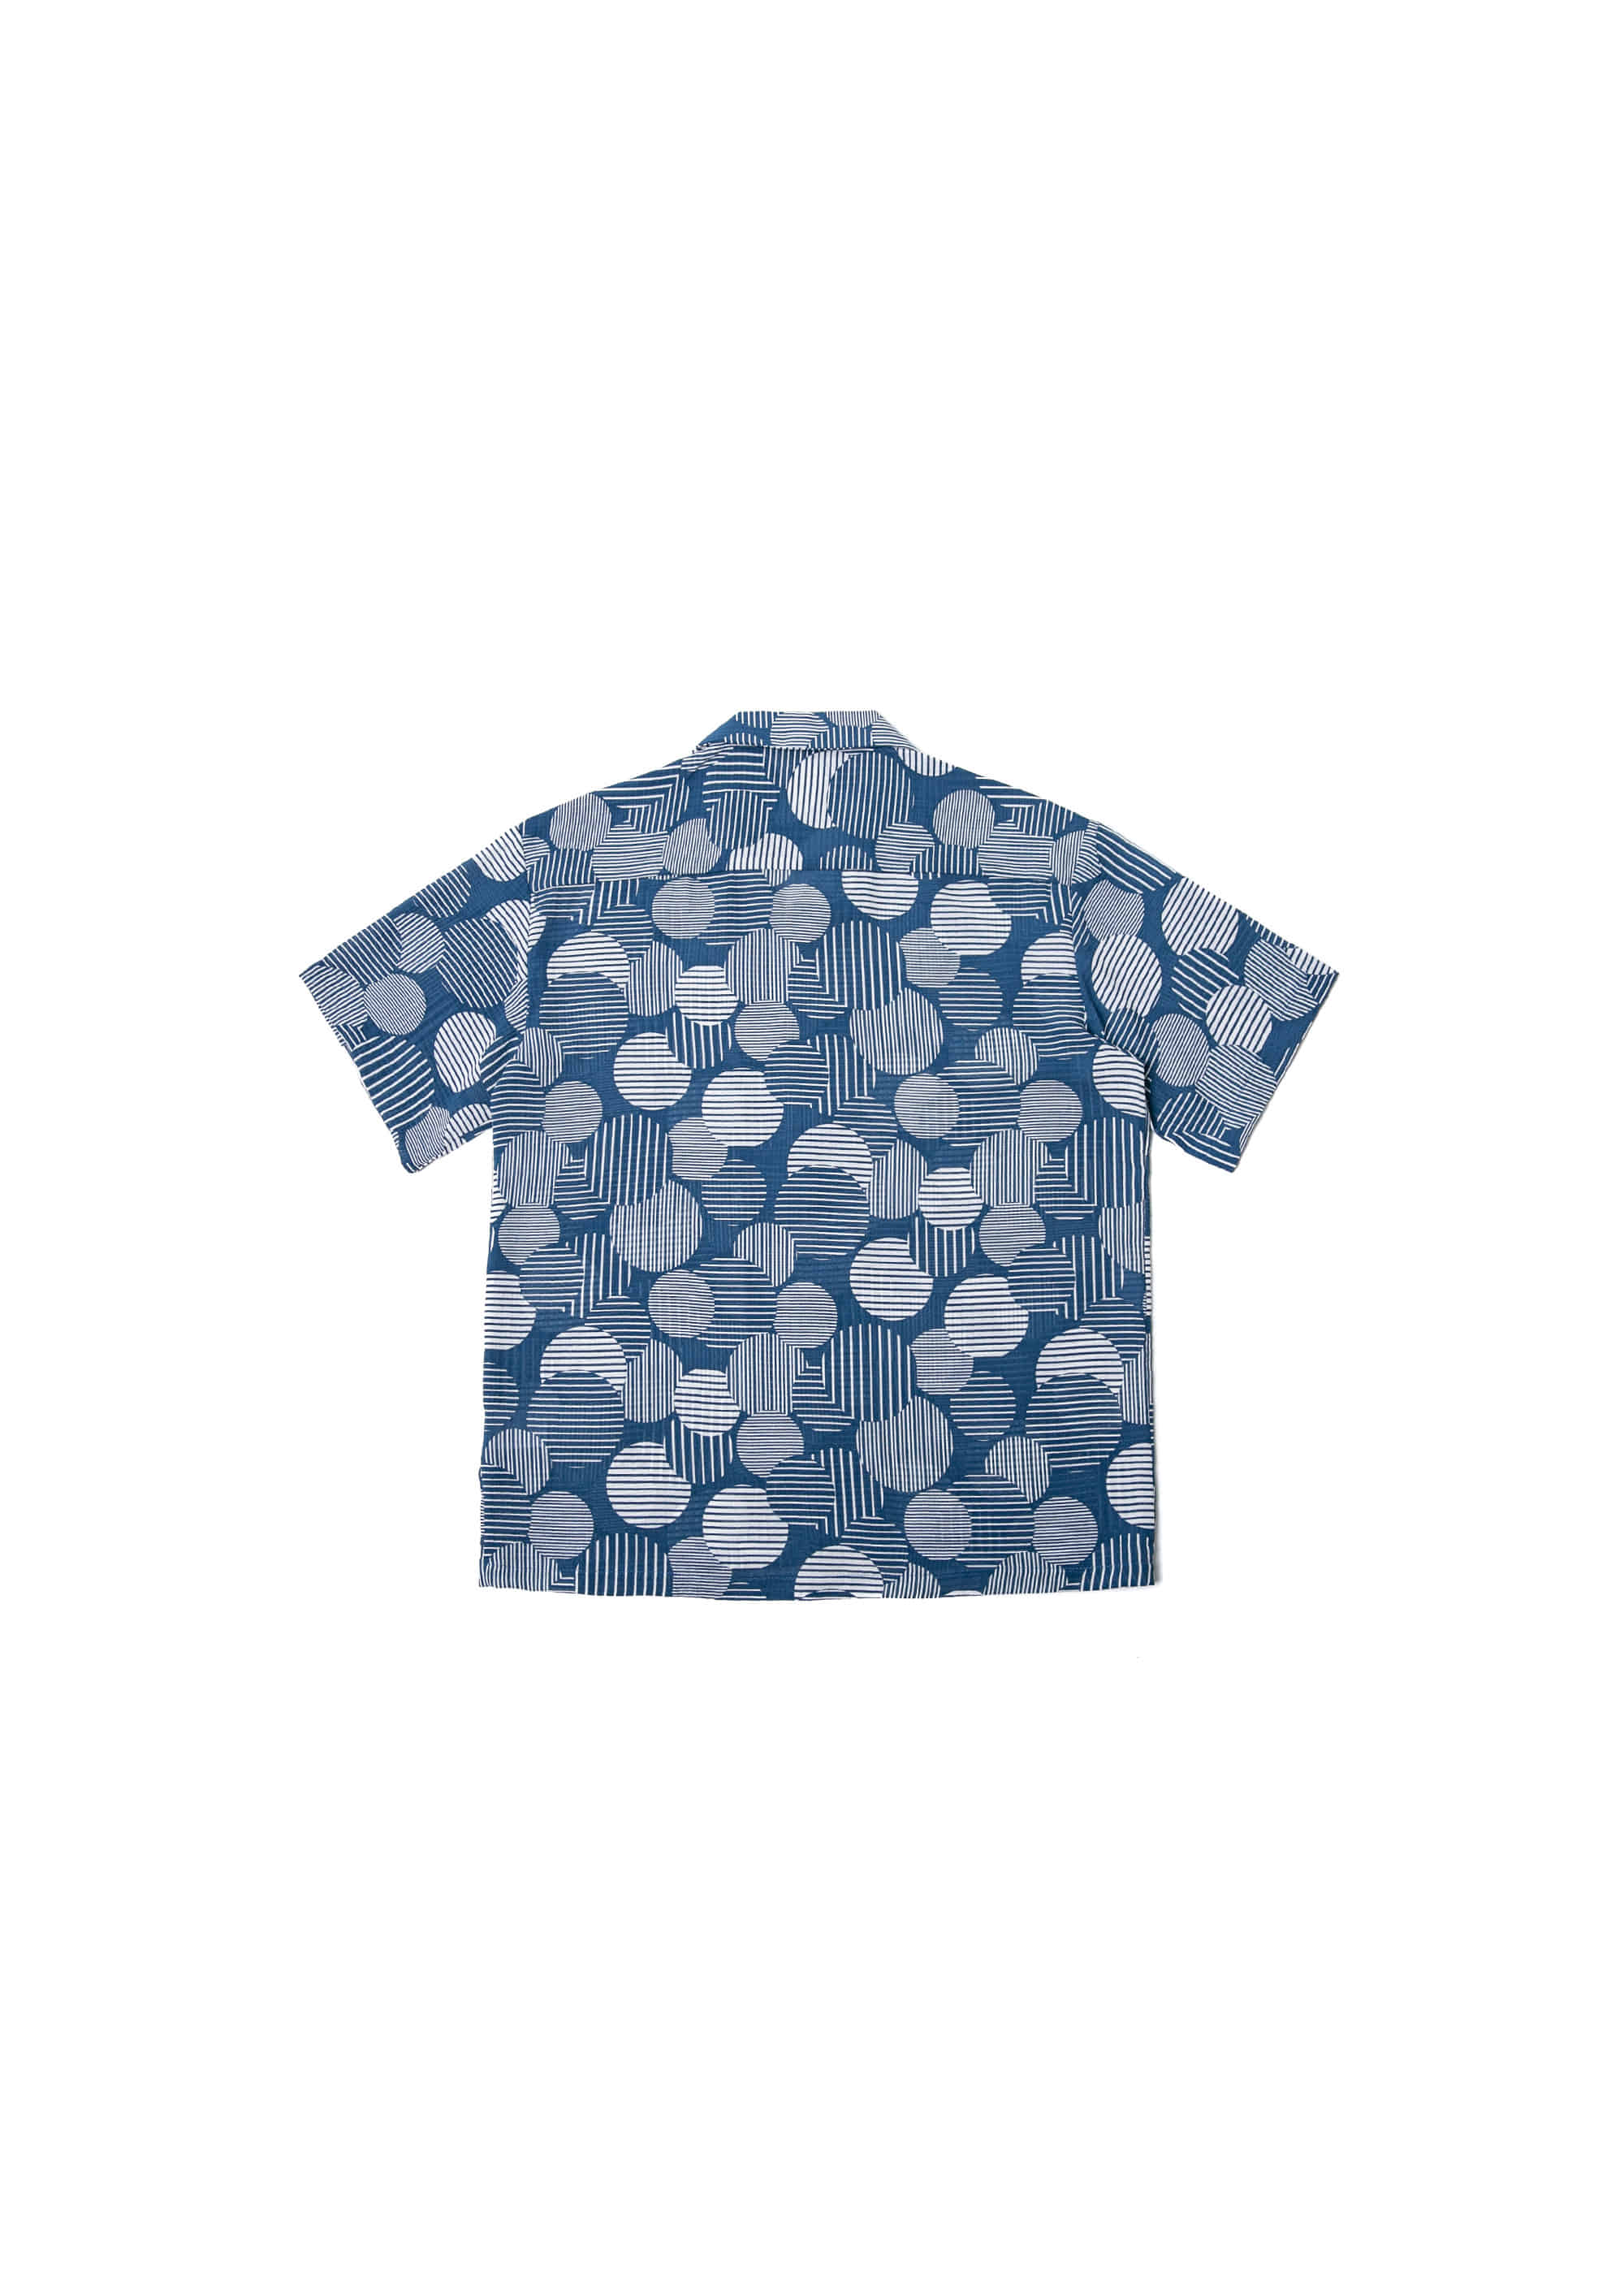 Big Dot Open Collar Half Shirts